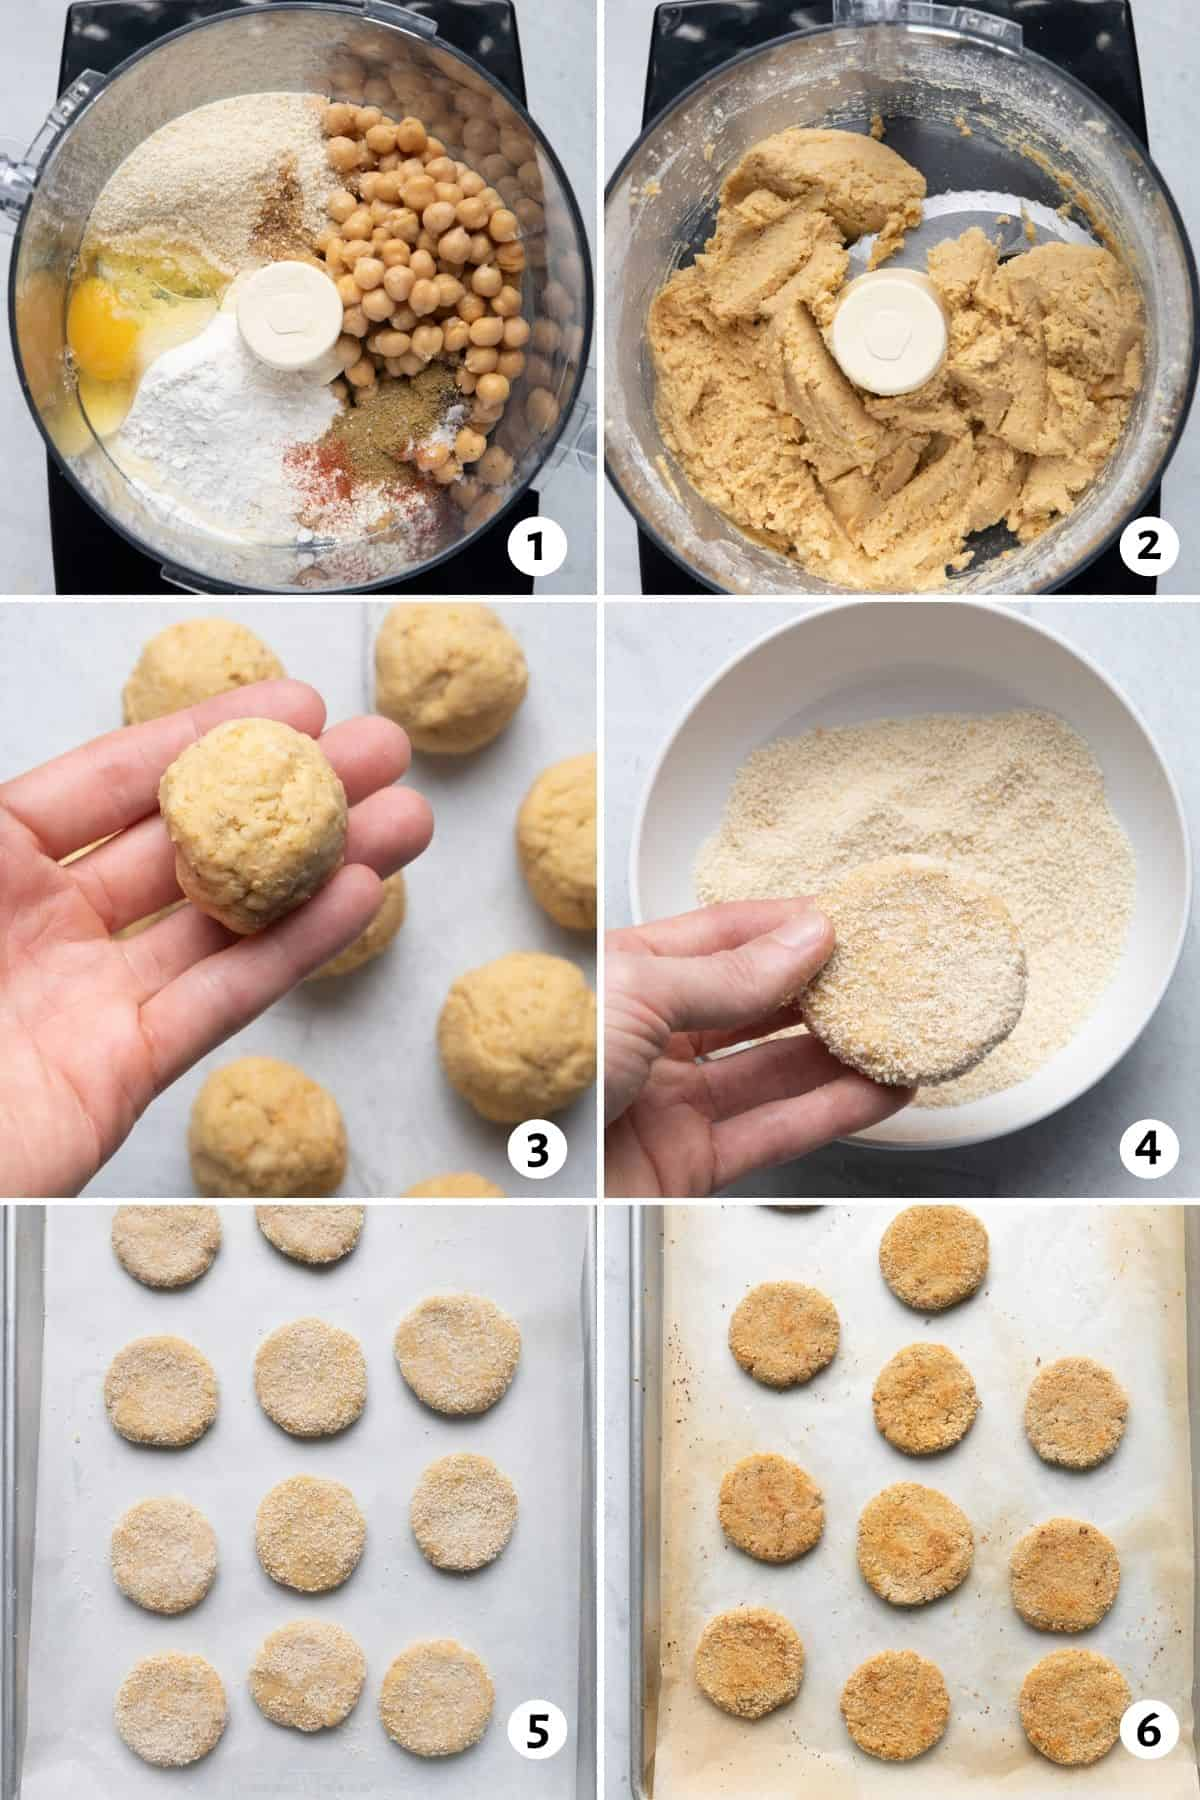 6 image collage to show the chickpea bite ingredients in the food processor, then rolling them, then baking them